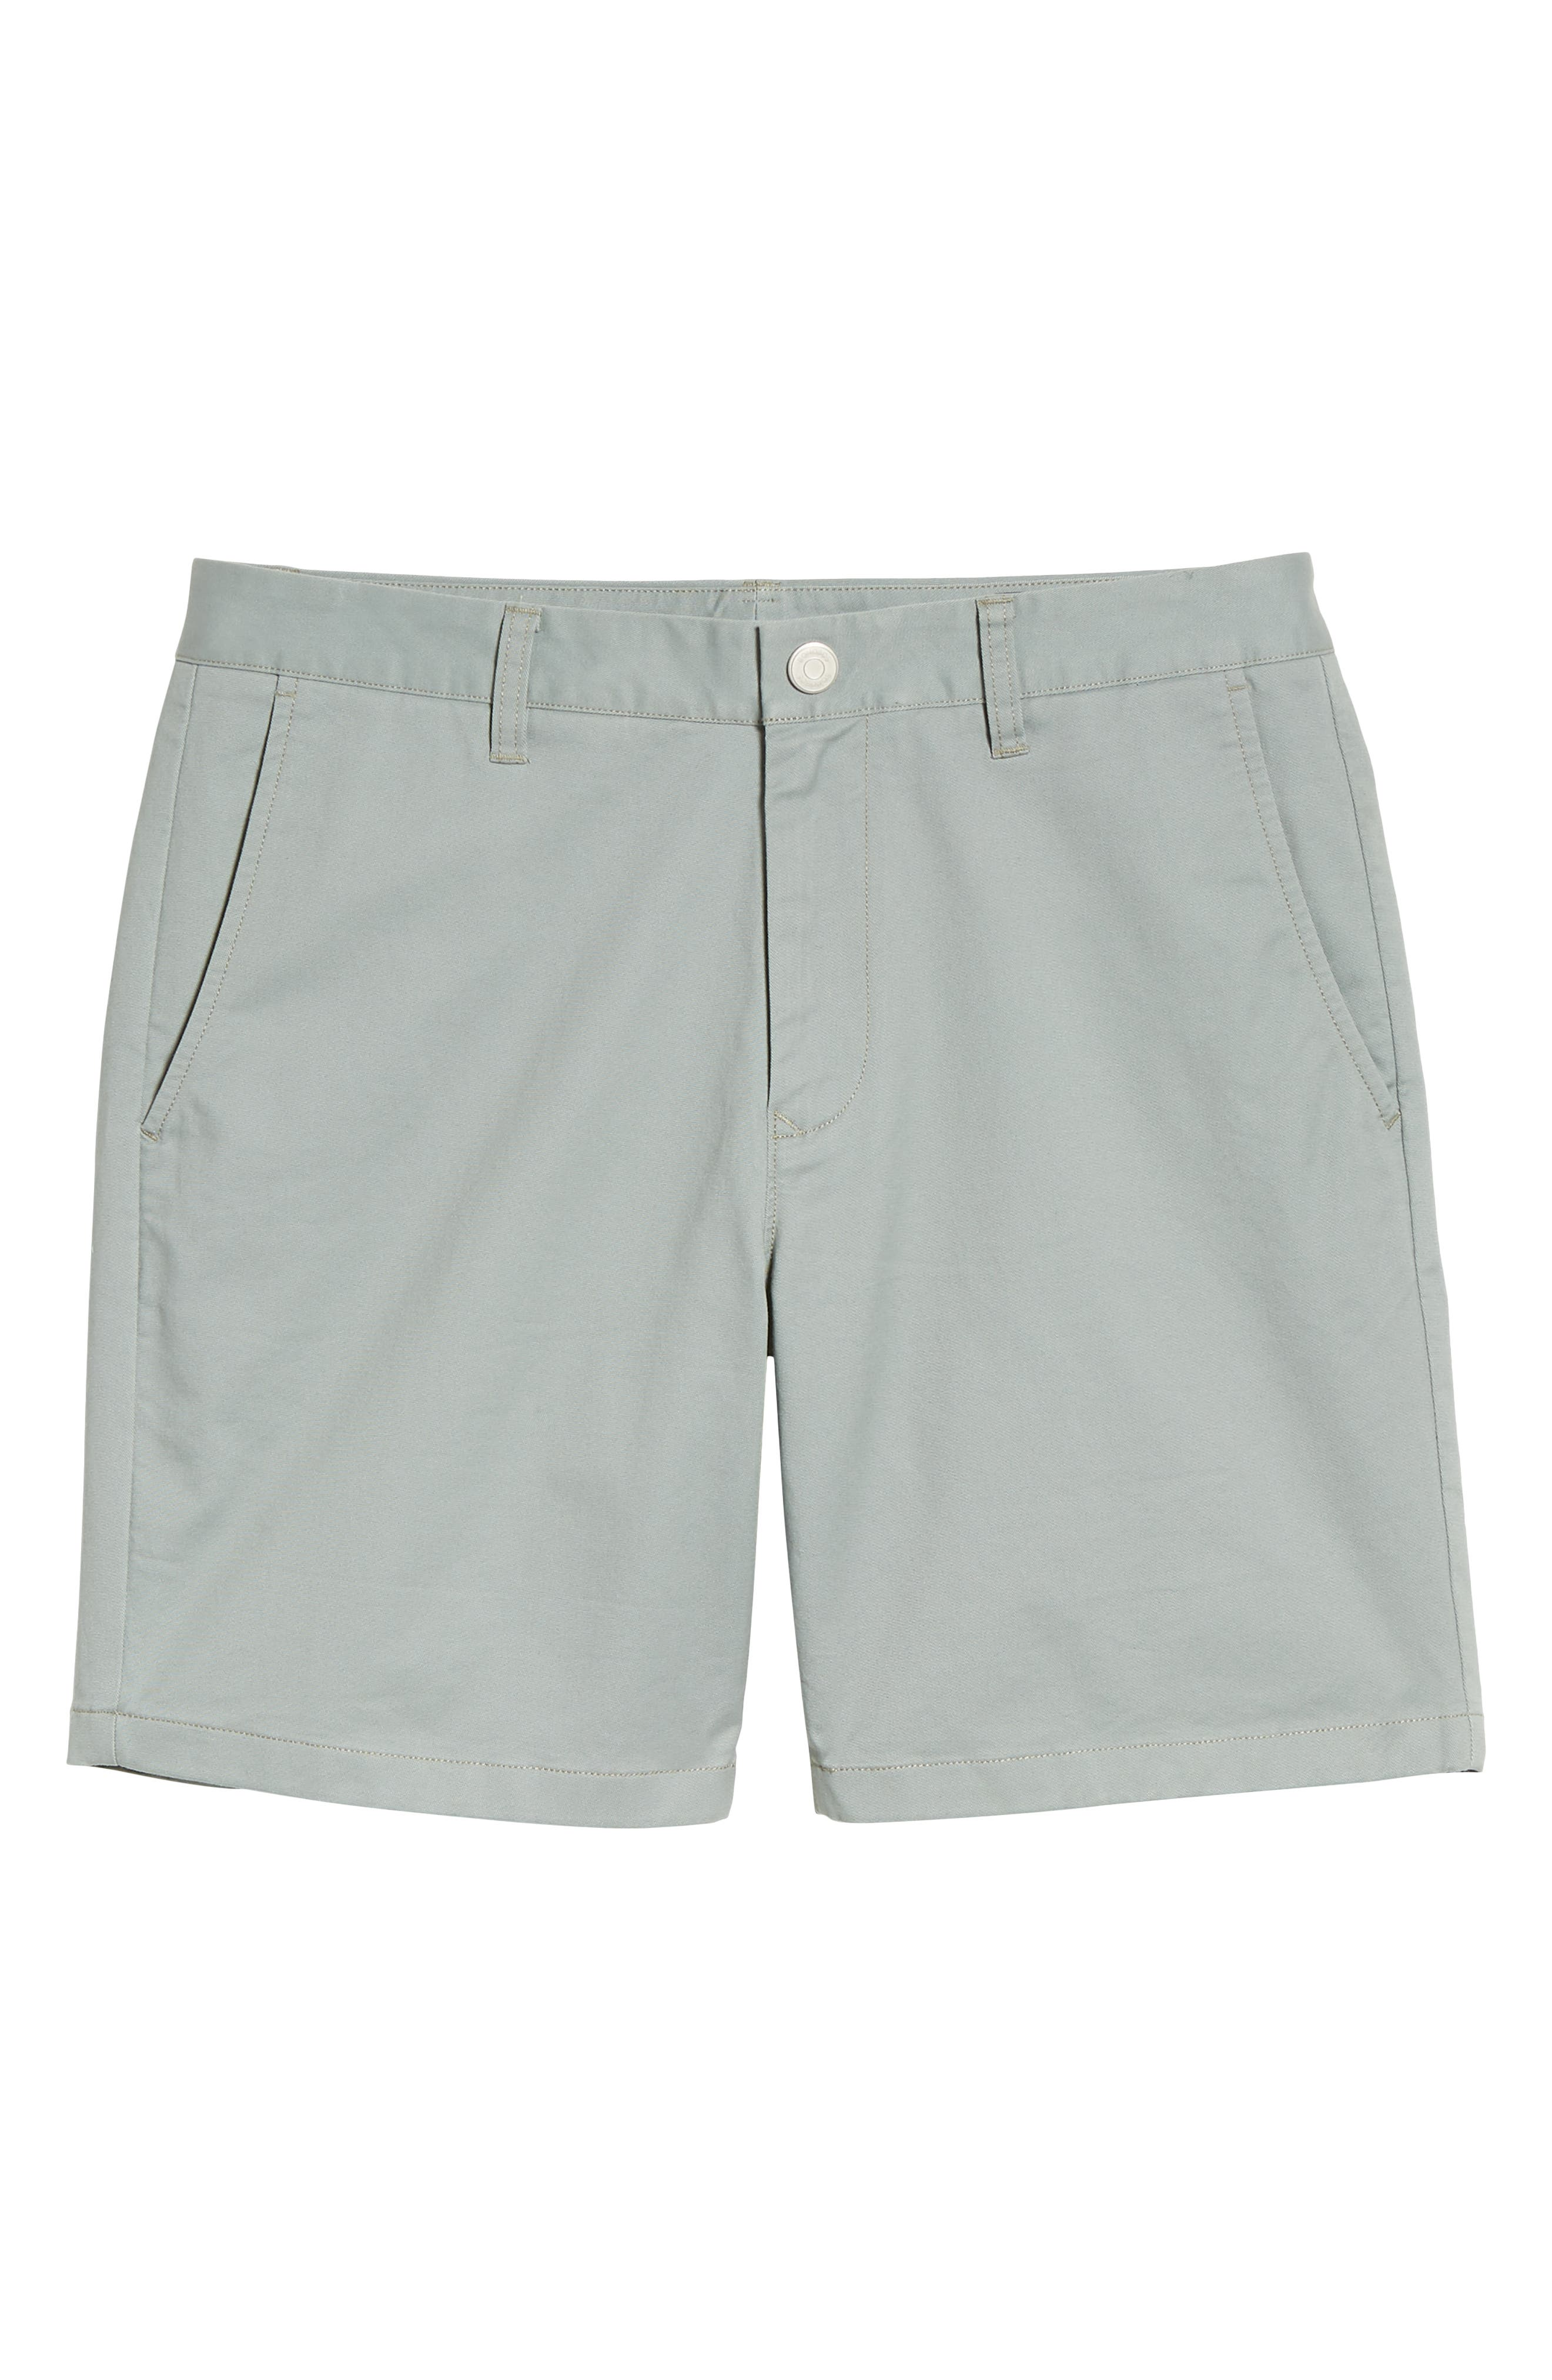 Stretch Chino 7-Inch Shorts,                             Alternate thumbnail 68, color,